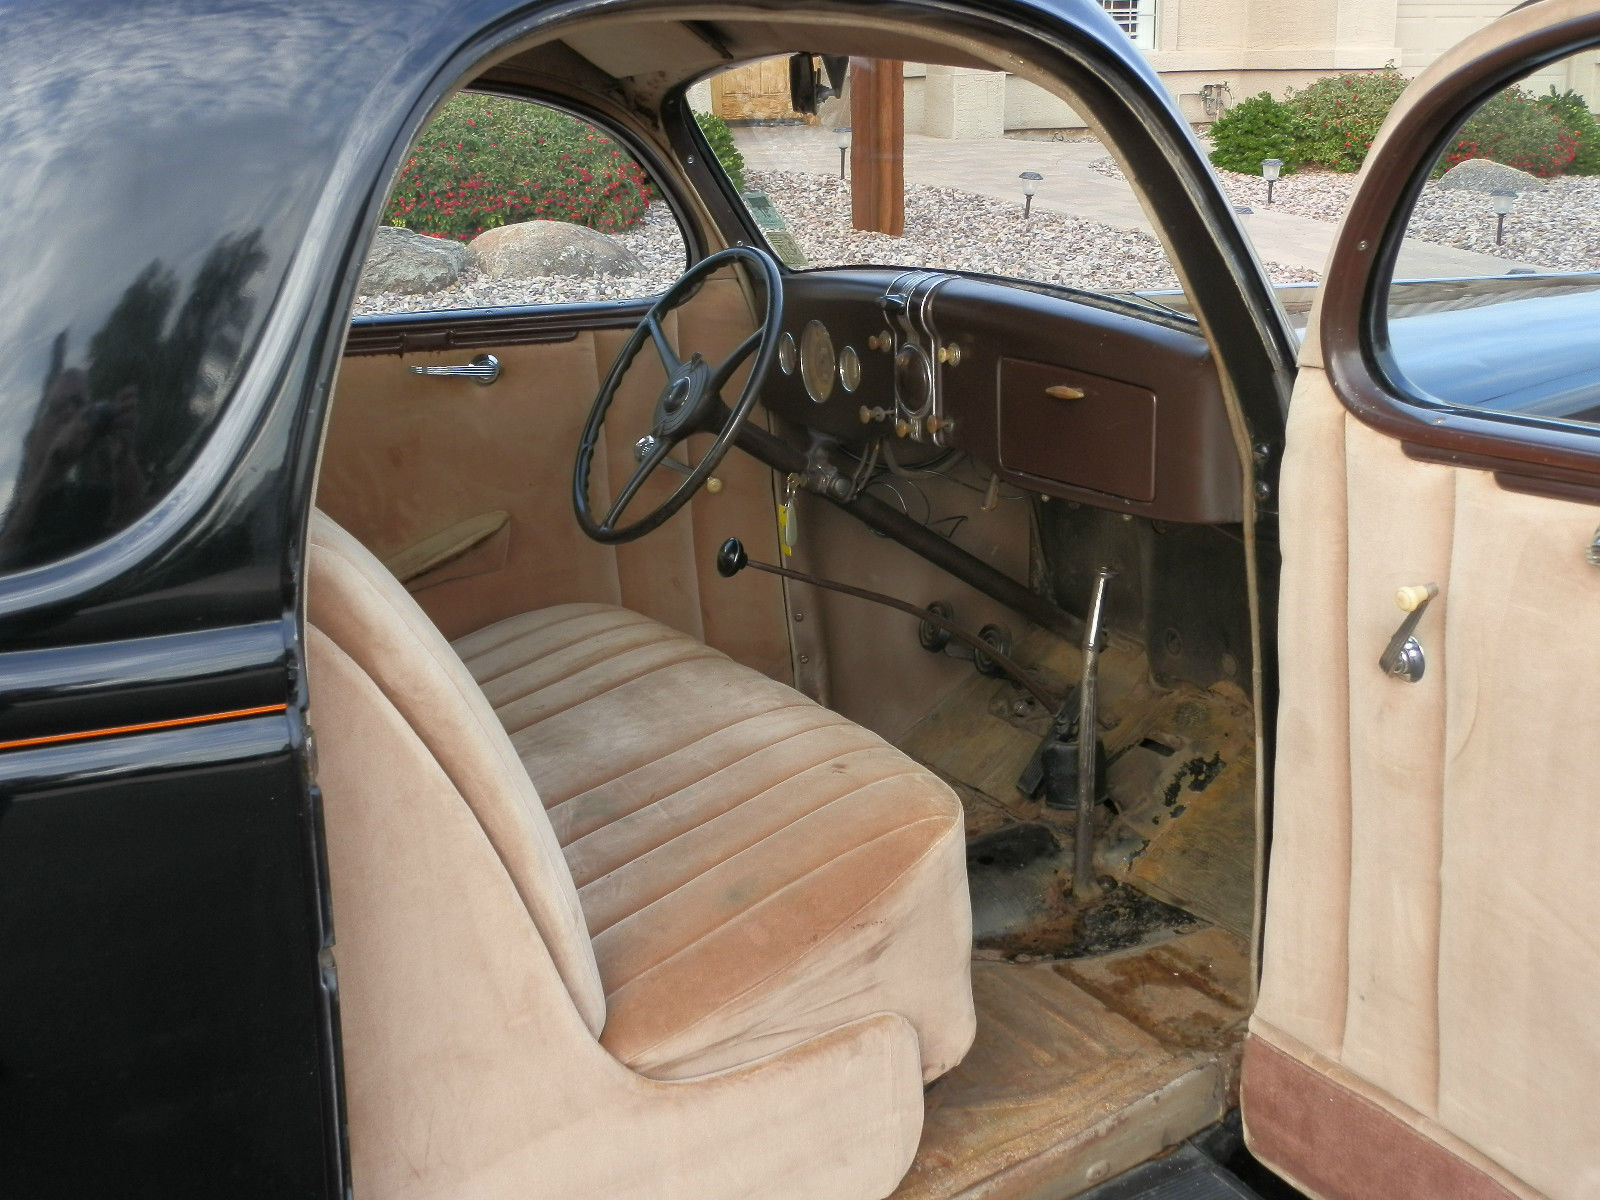 1936 Ford Coupe 3 Window, Original car with one repaint